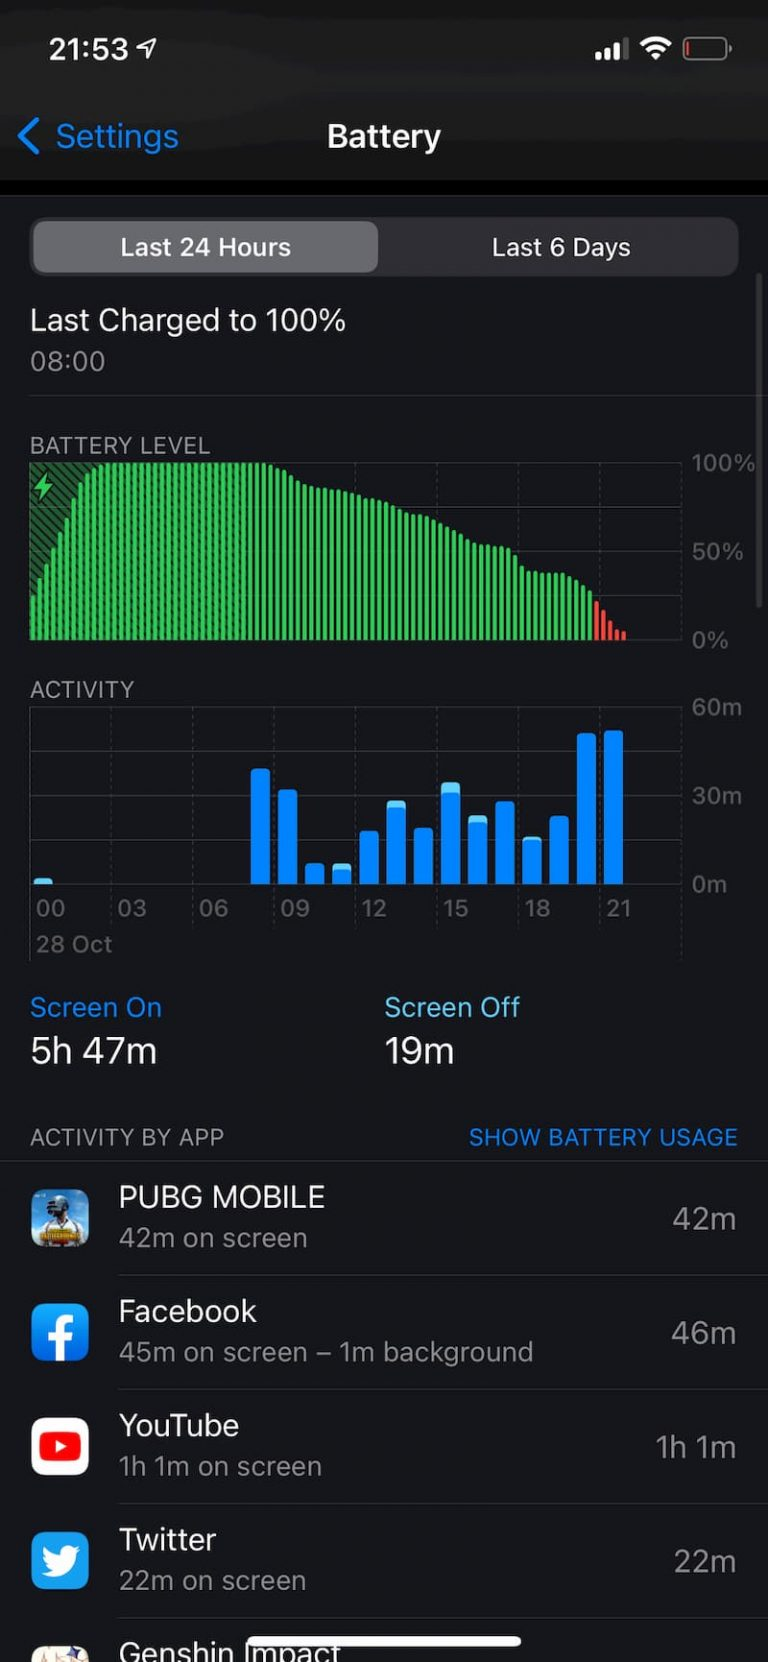 iPhone-12-Pro_battery-life_28Oct (2)